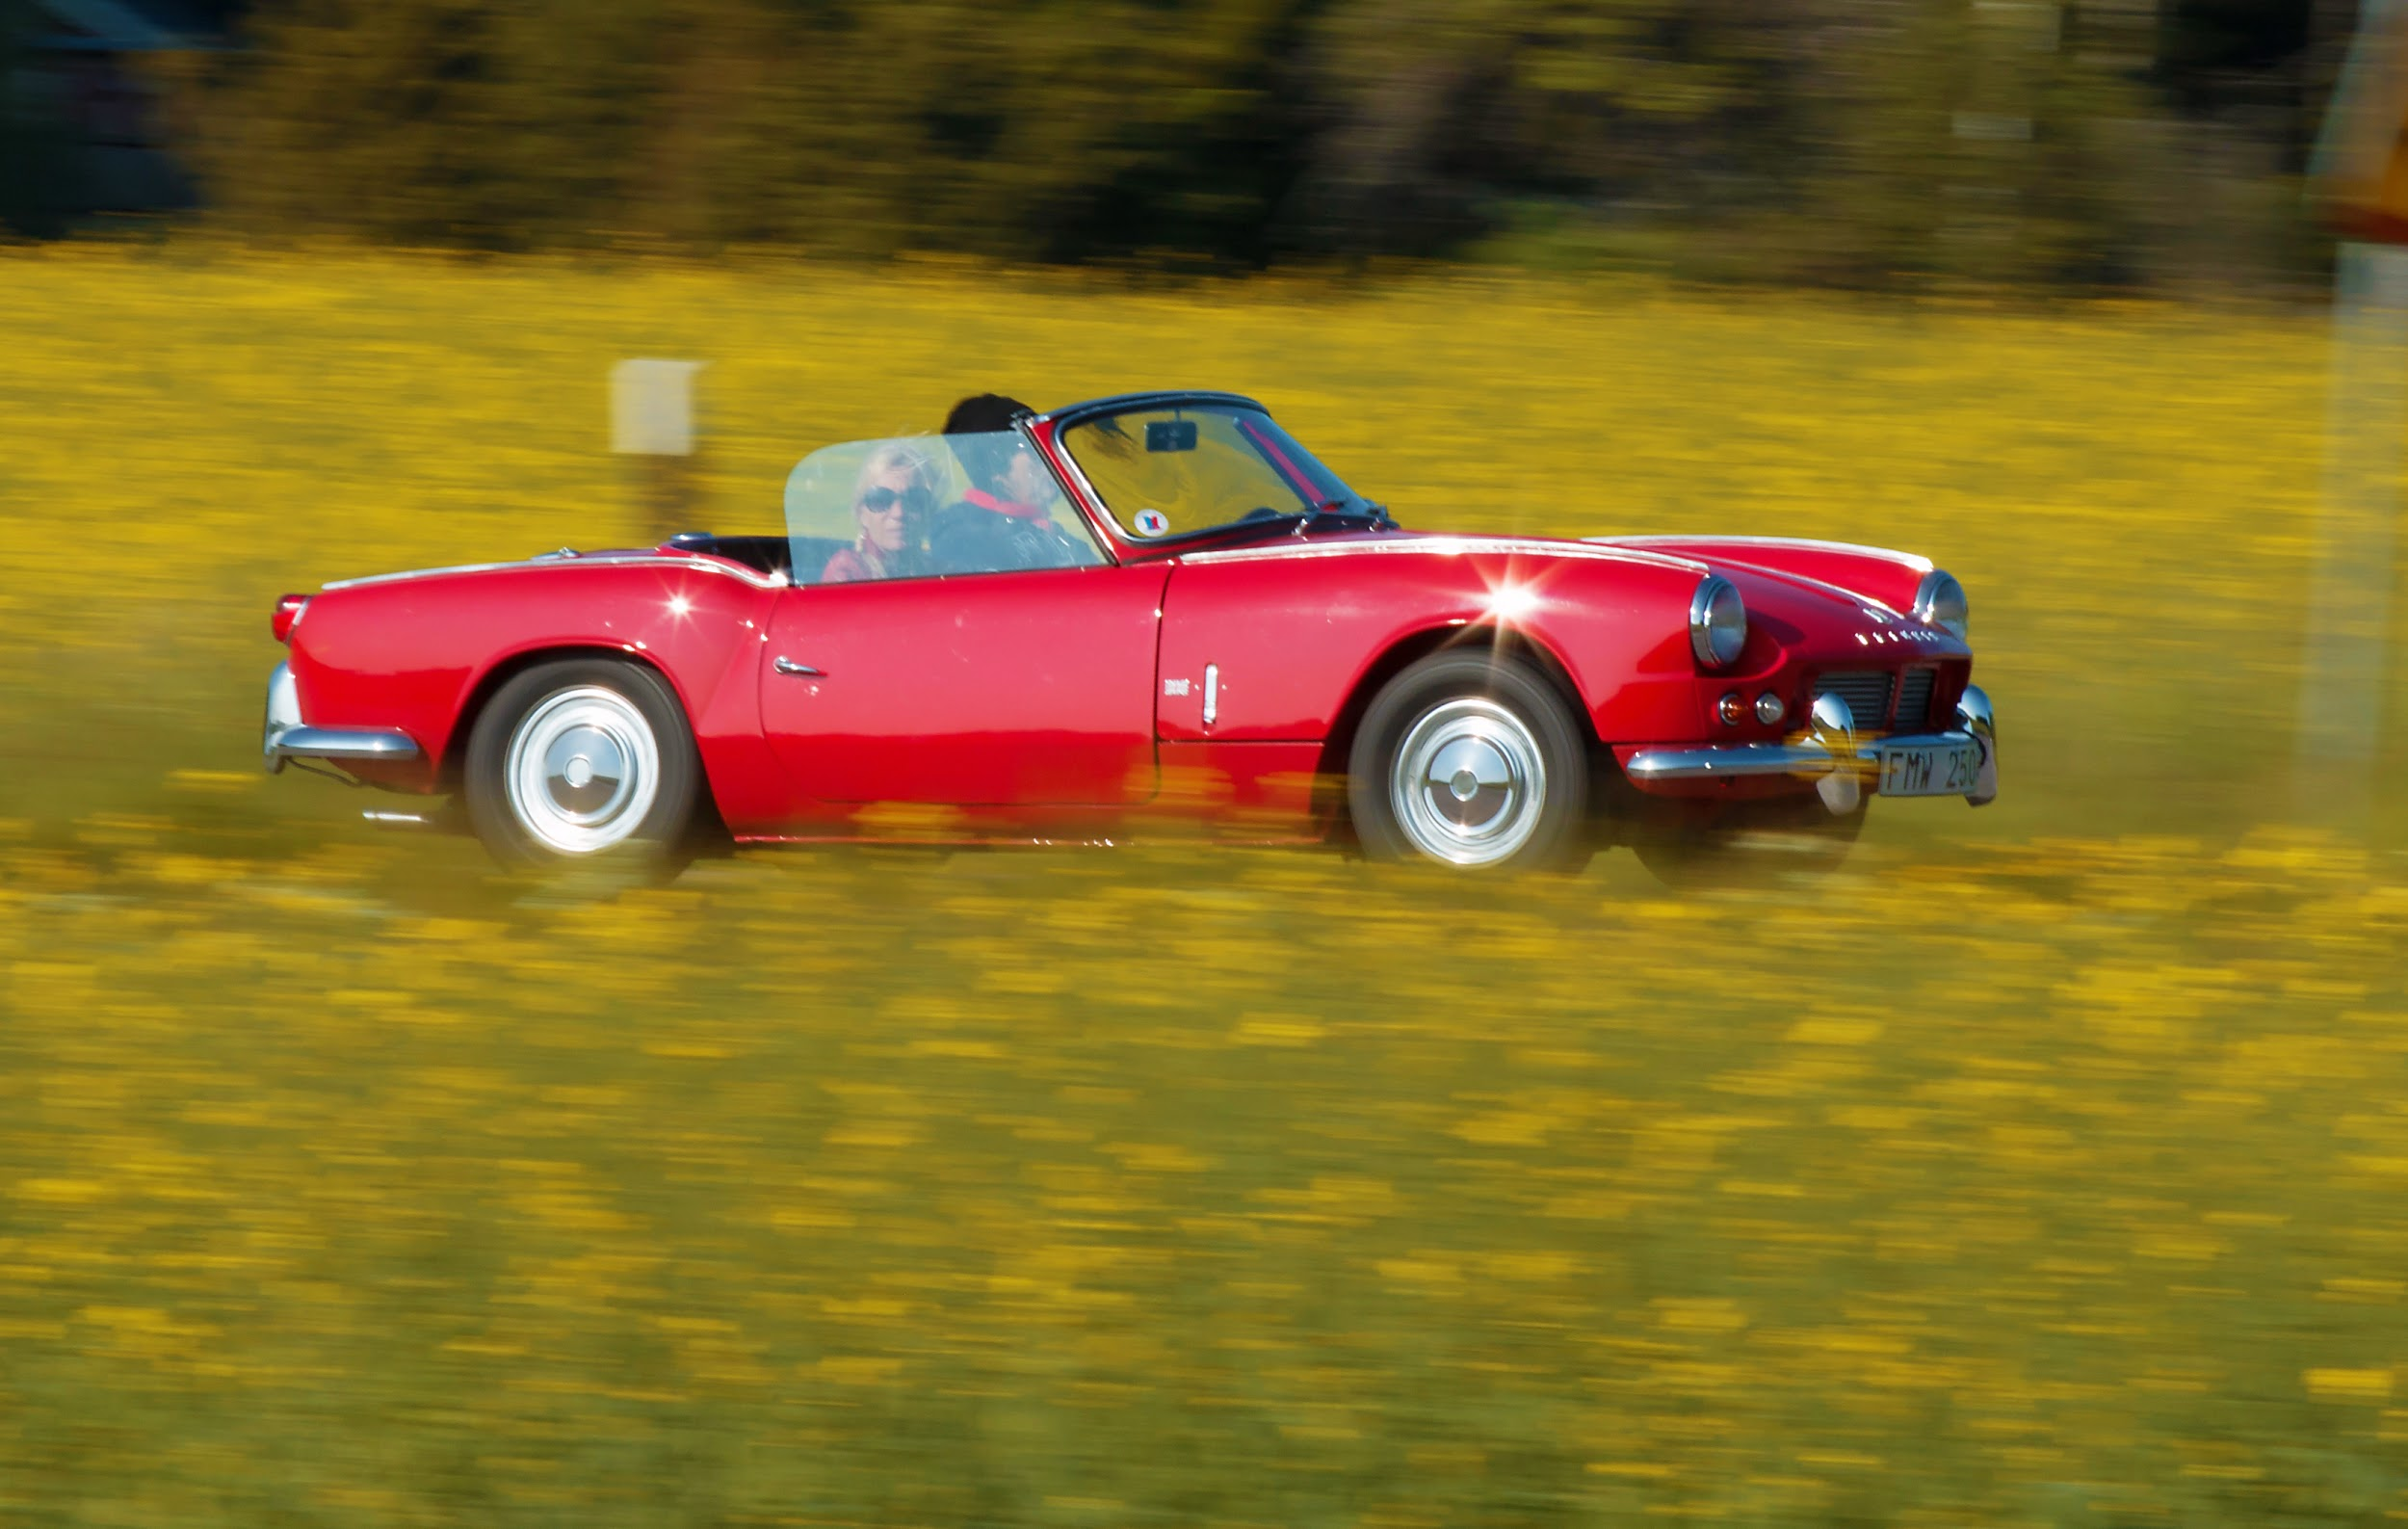 Classic Car of the Month - Triumph Spitfire